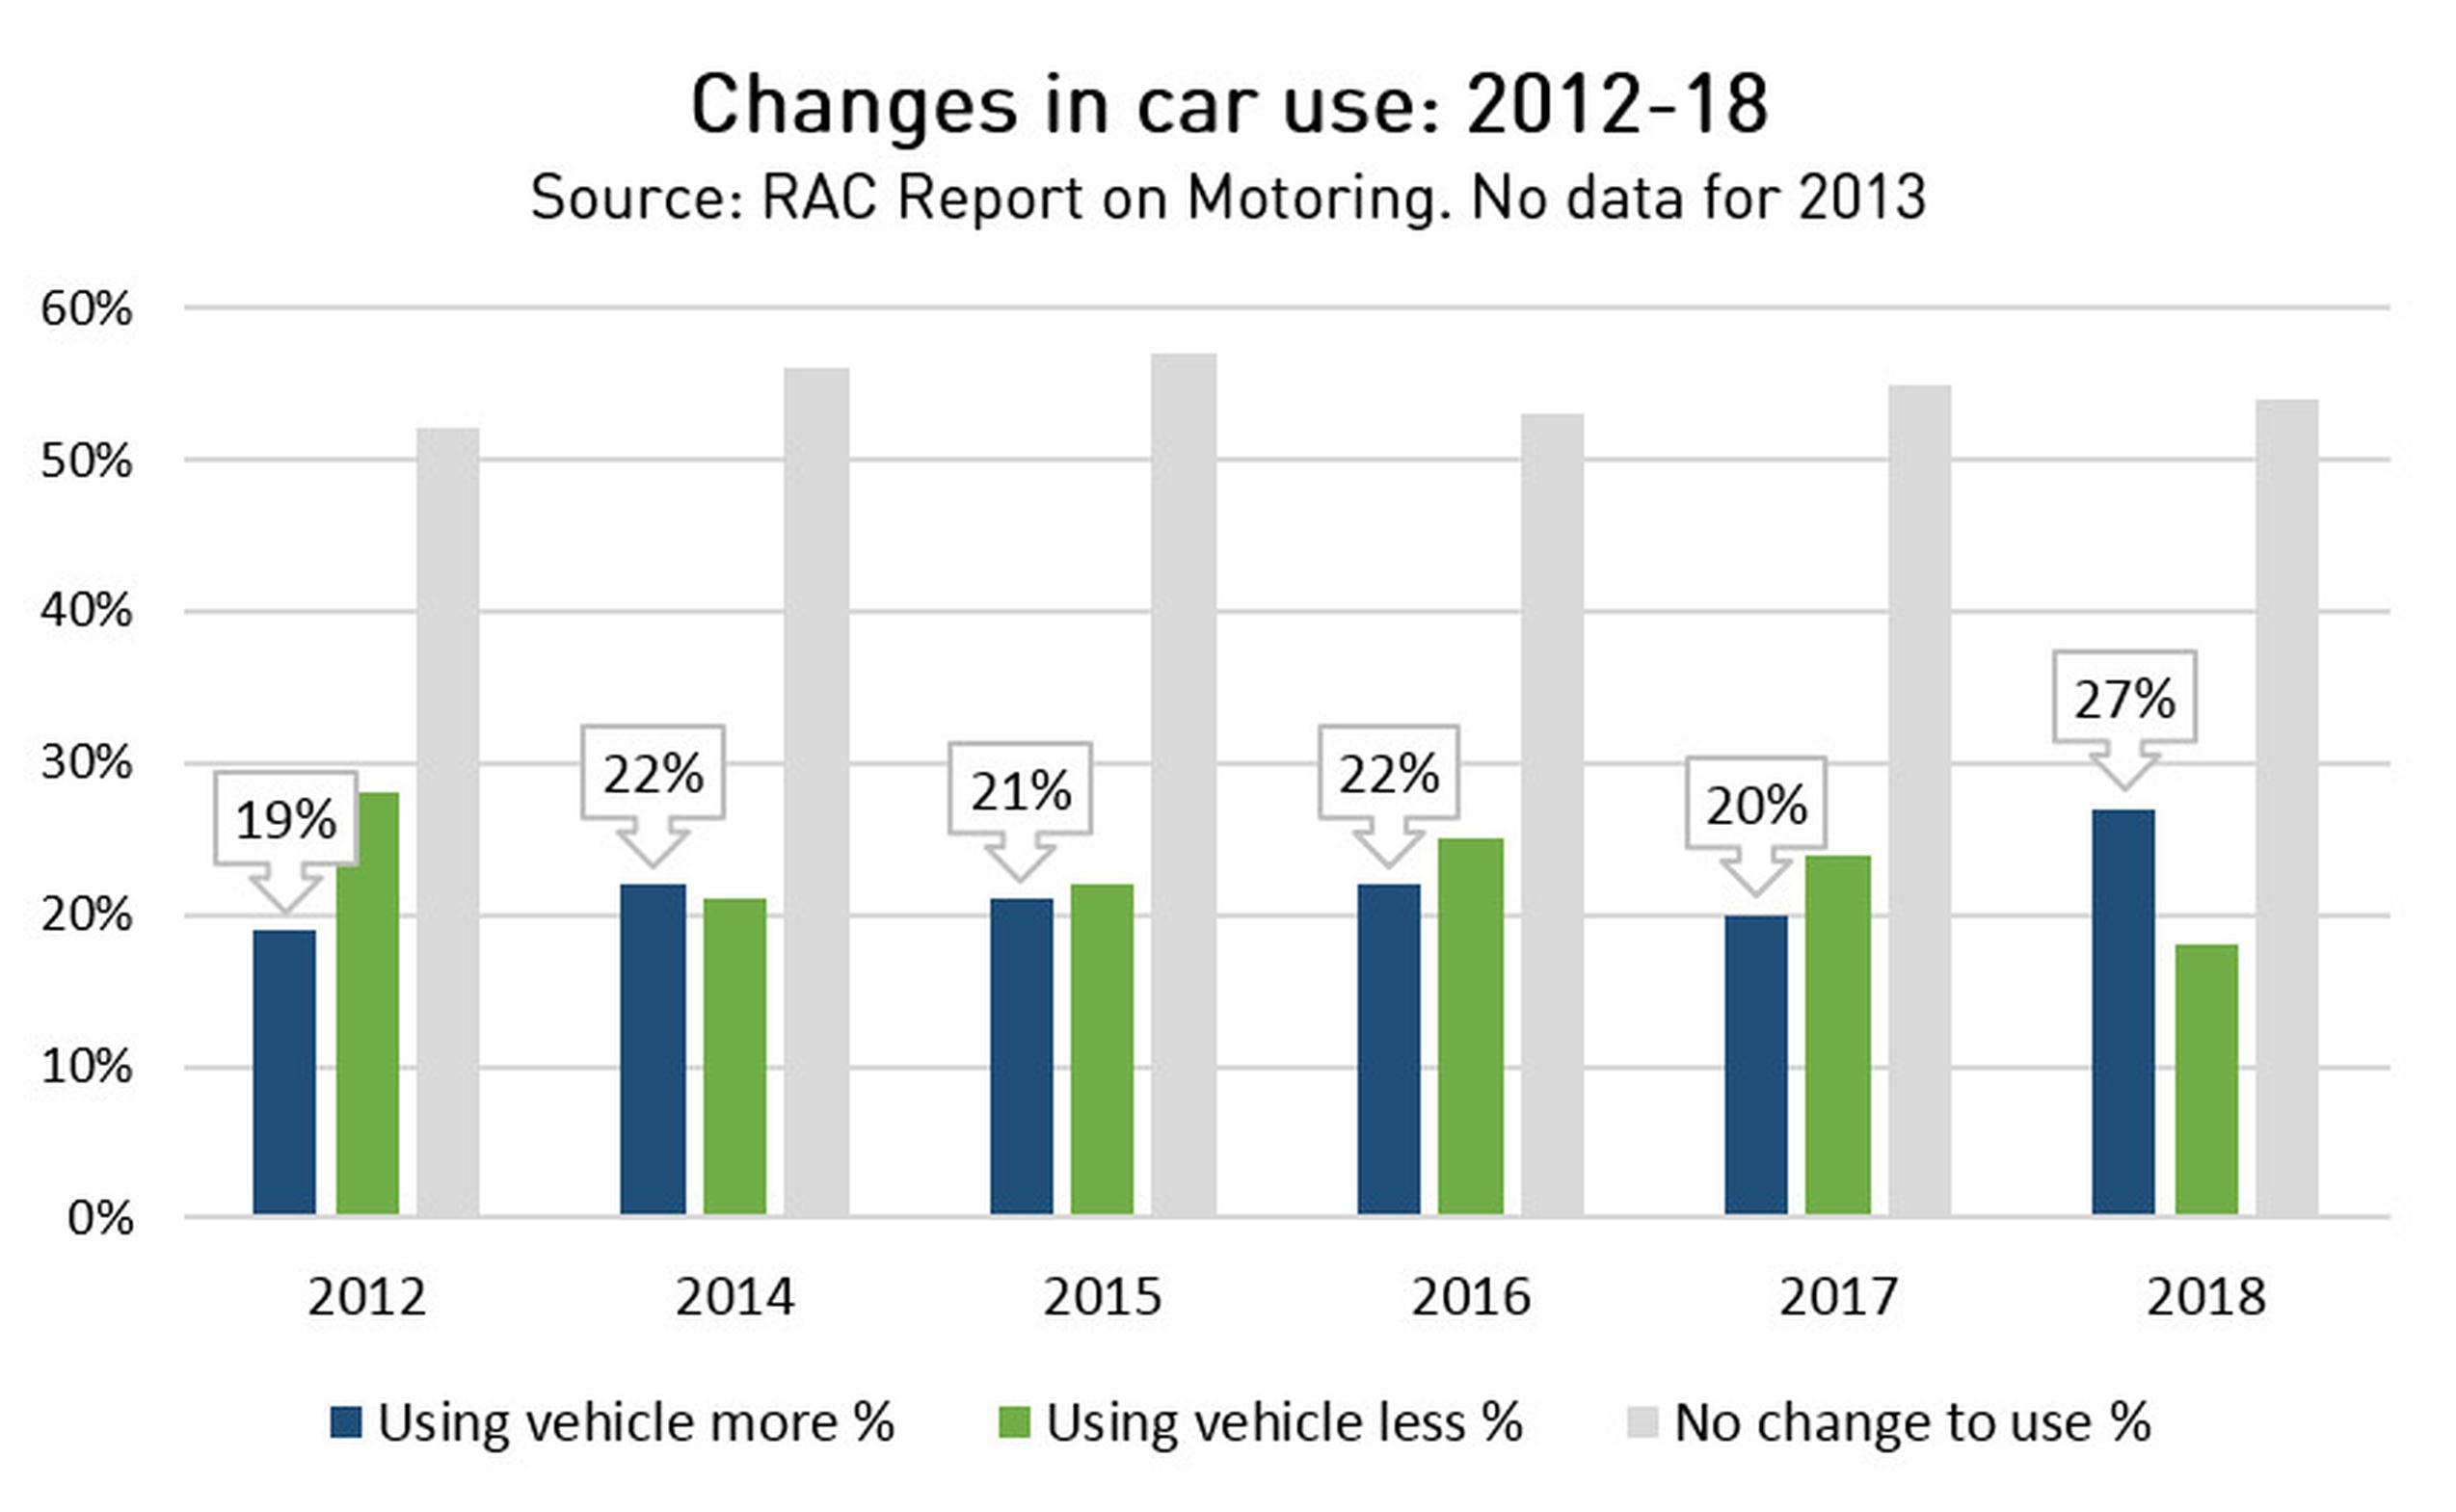 The RAC found the percentage of drivers whose car use has increased in the last year rose for the first time in four years. In 2018, 27% of motorists say they are using their cars more than the year before